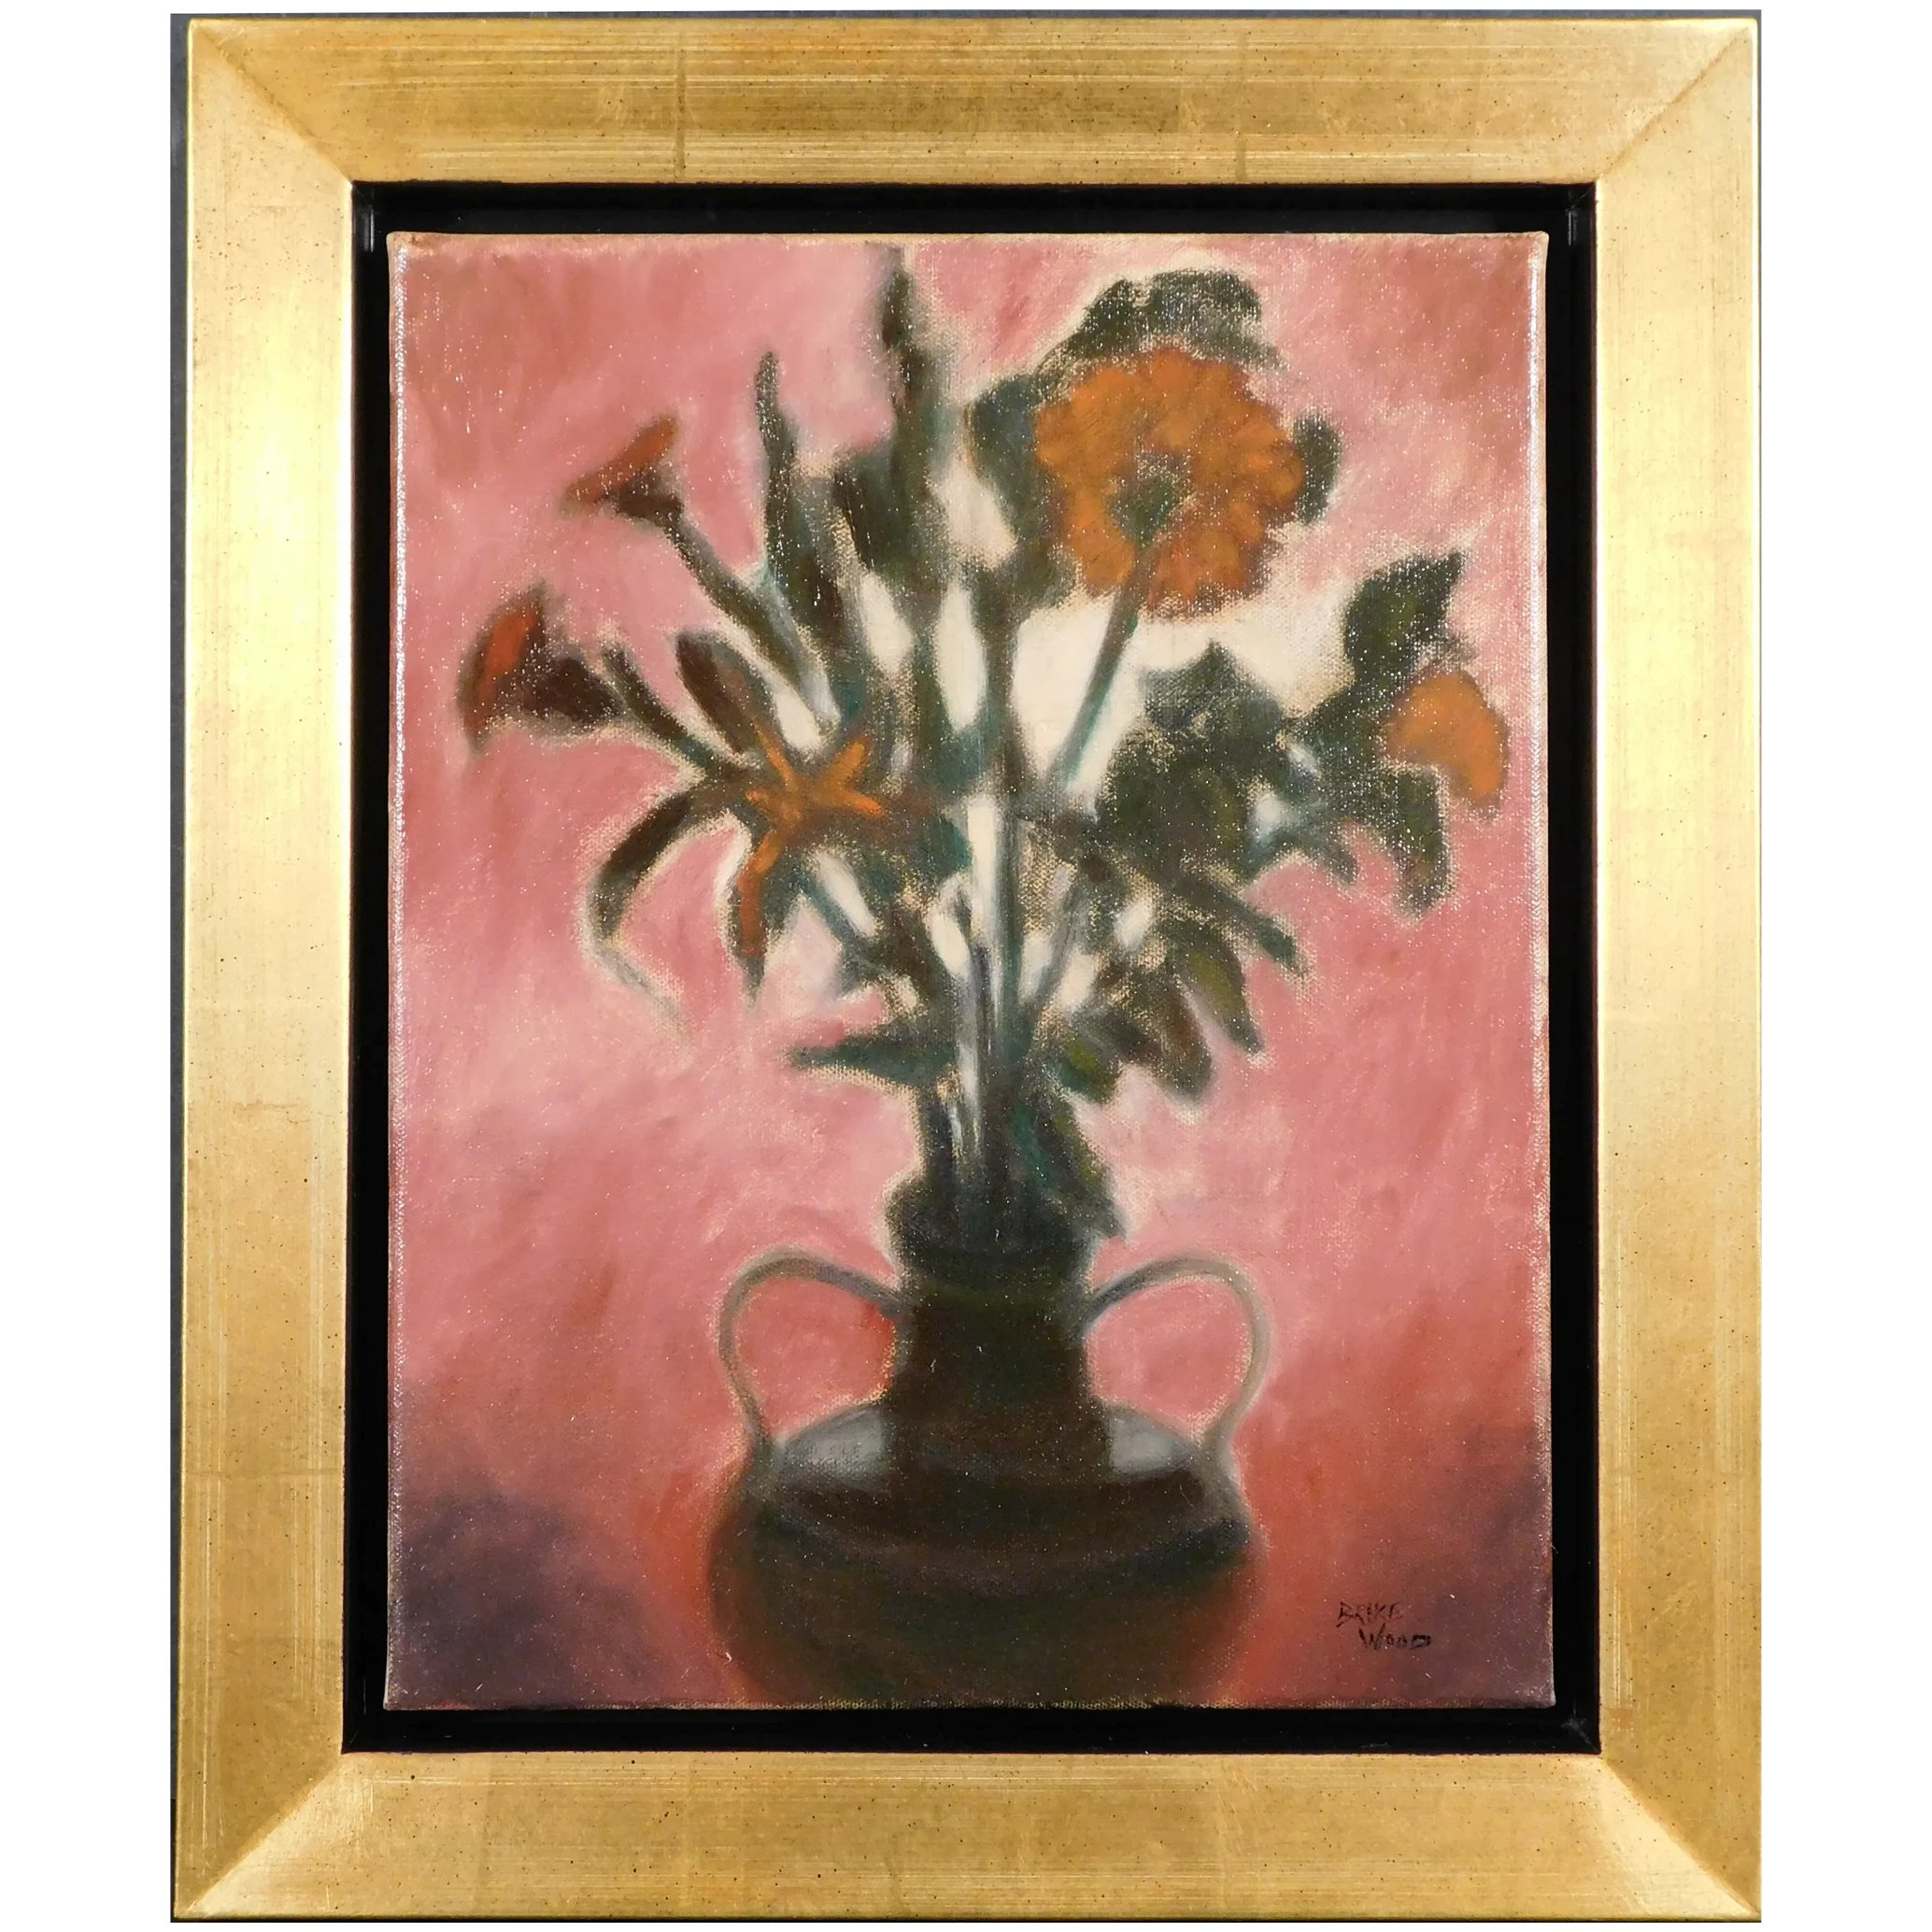 After Dark Floral Still Life Oil Painting By Bruce Wood